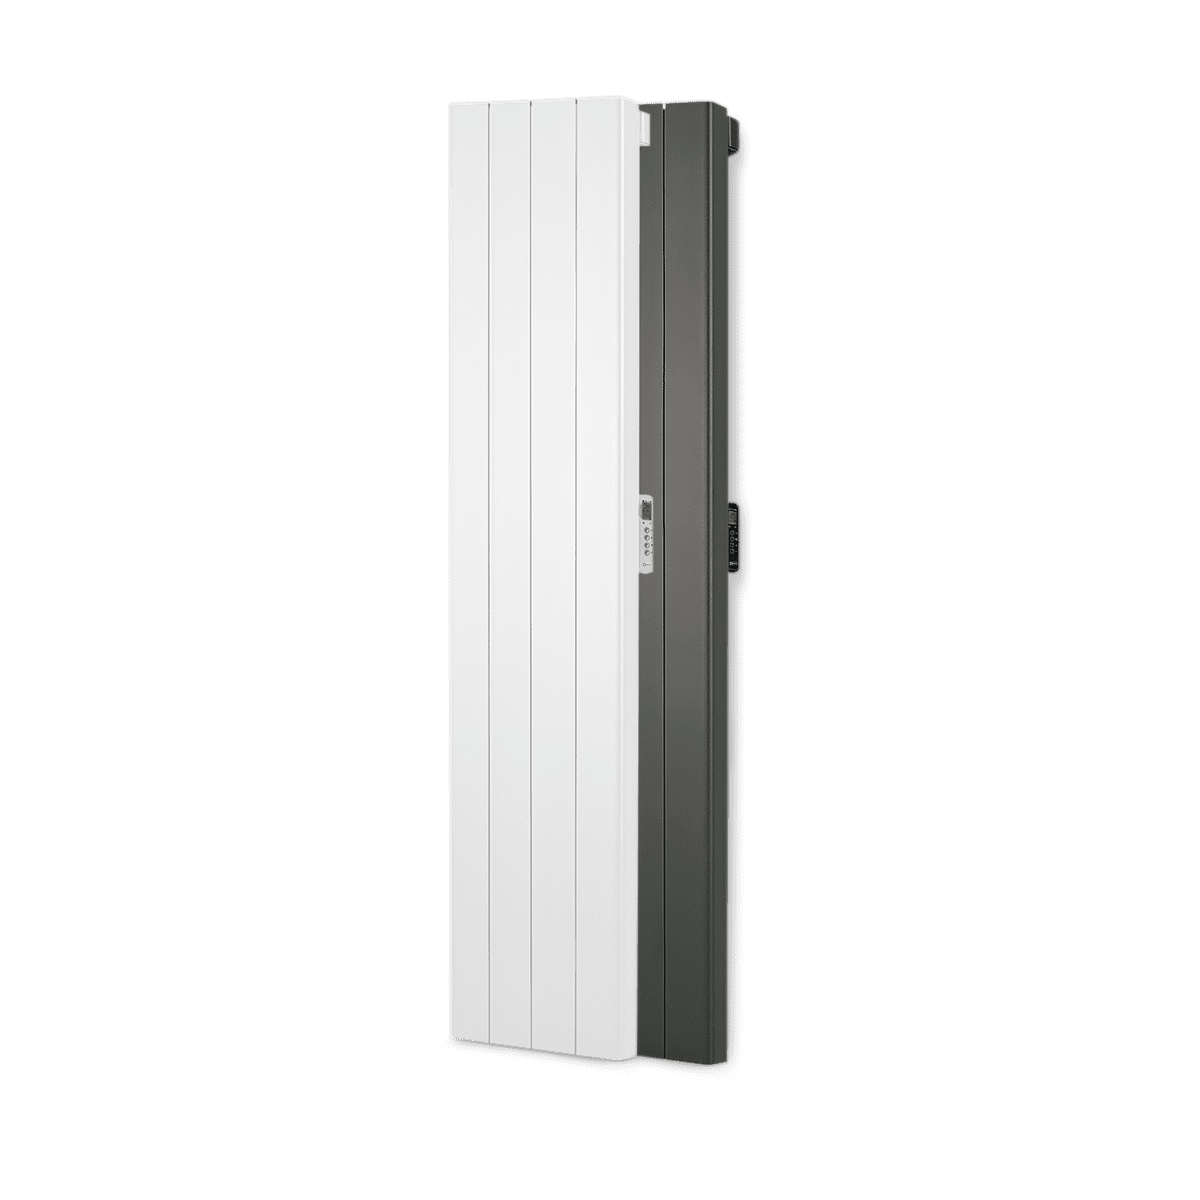 Rointe Palaos tall vertical radiators in white and black with 4 heating elements